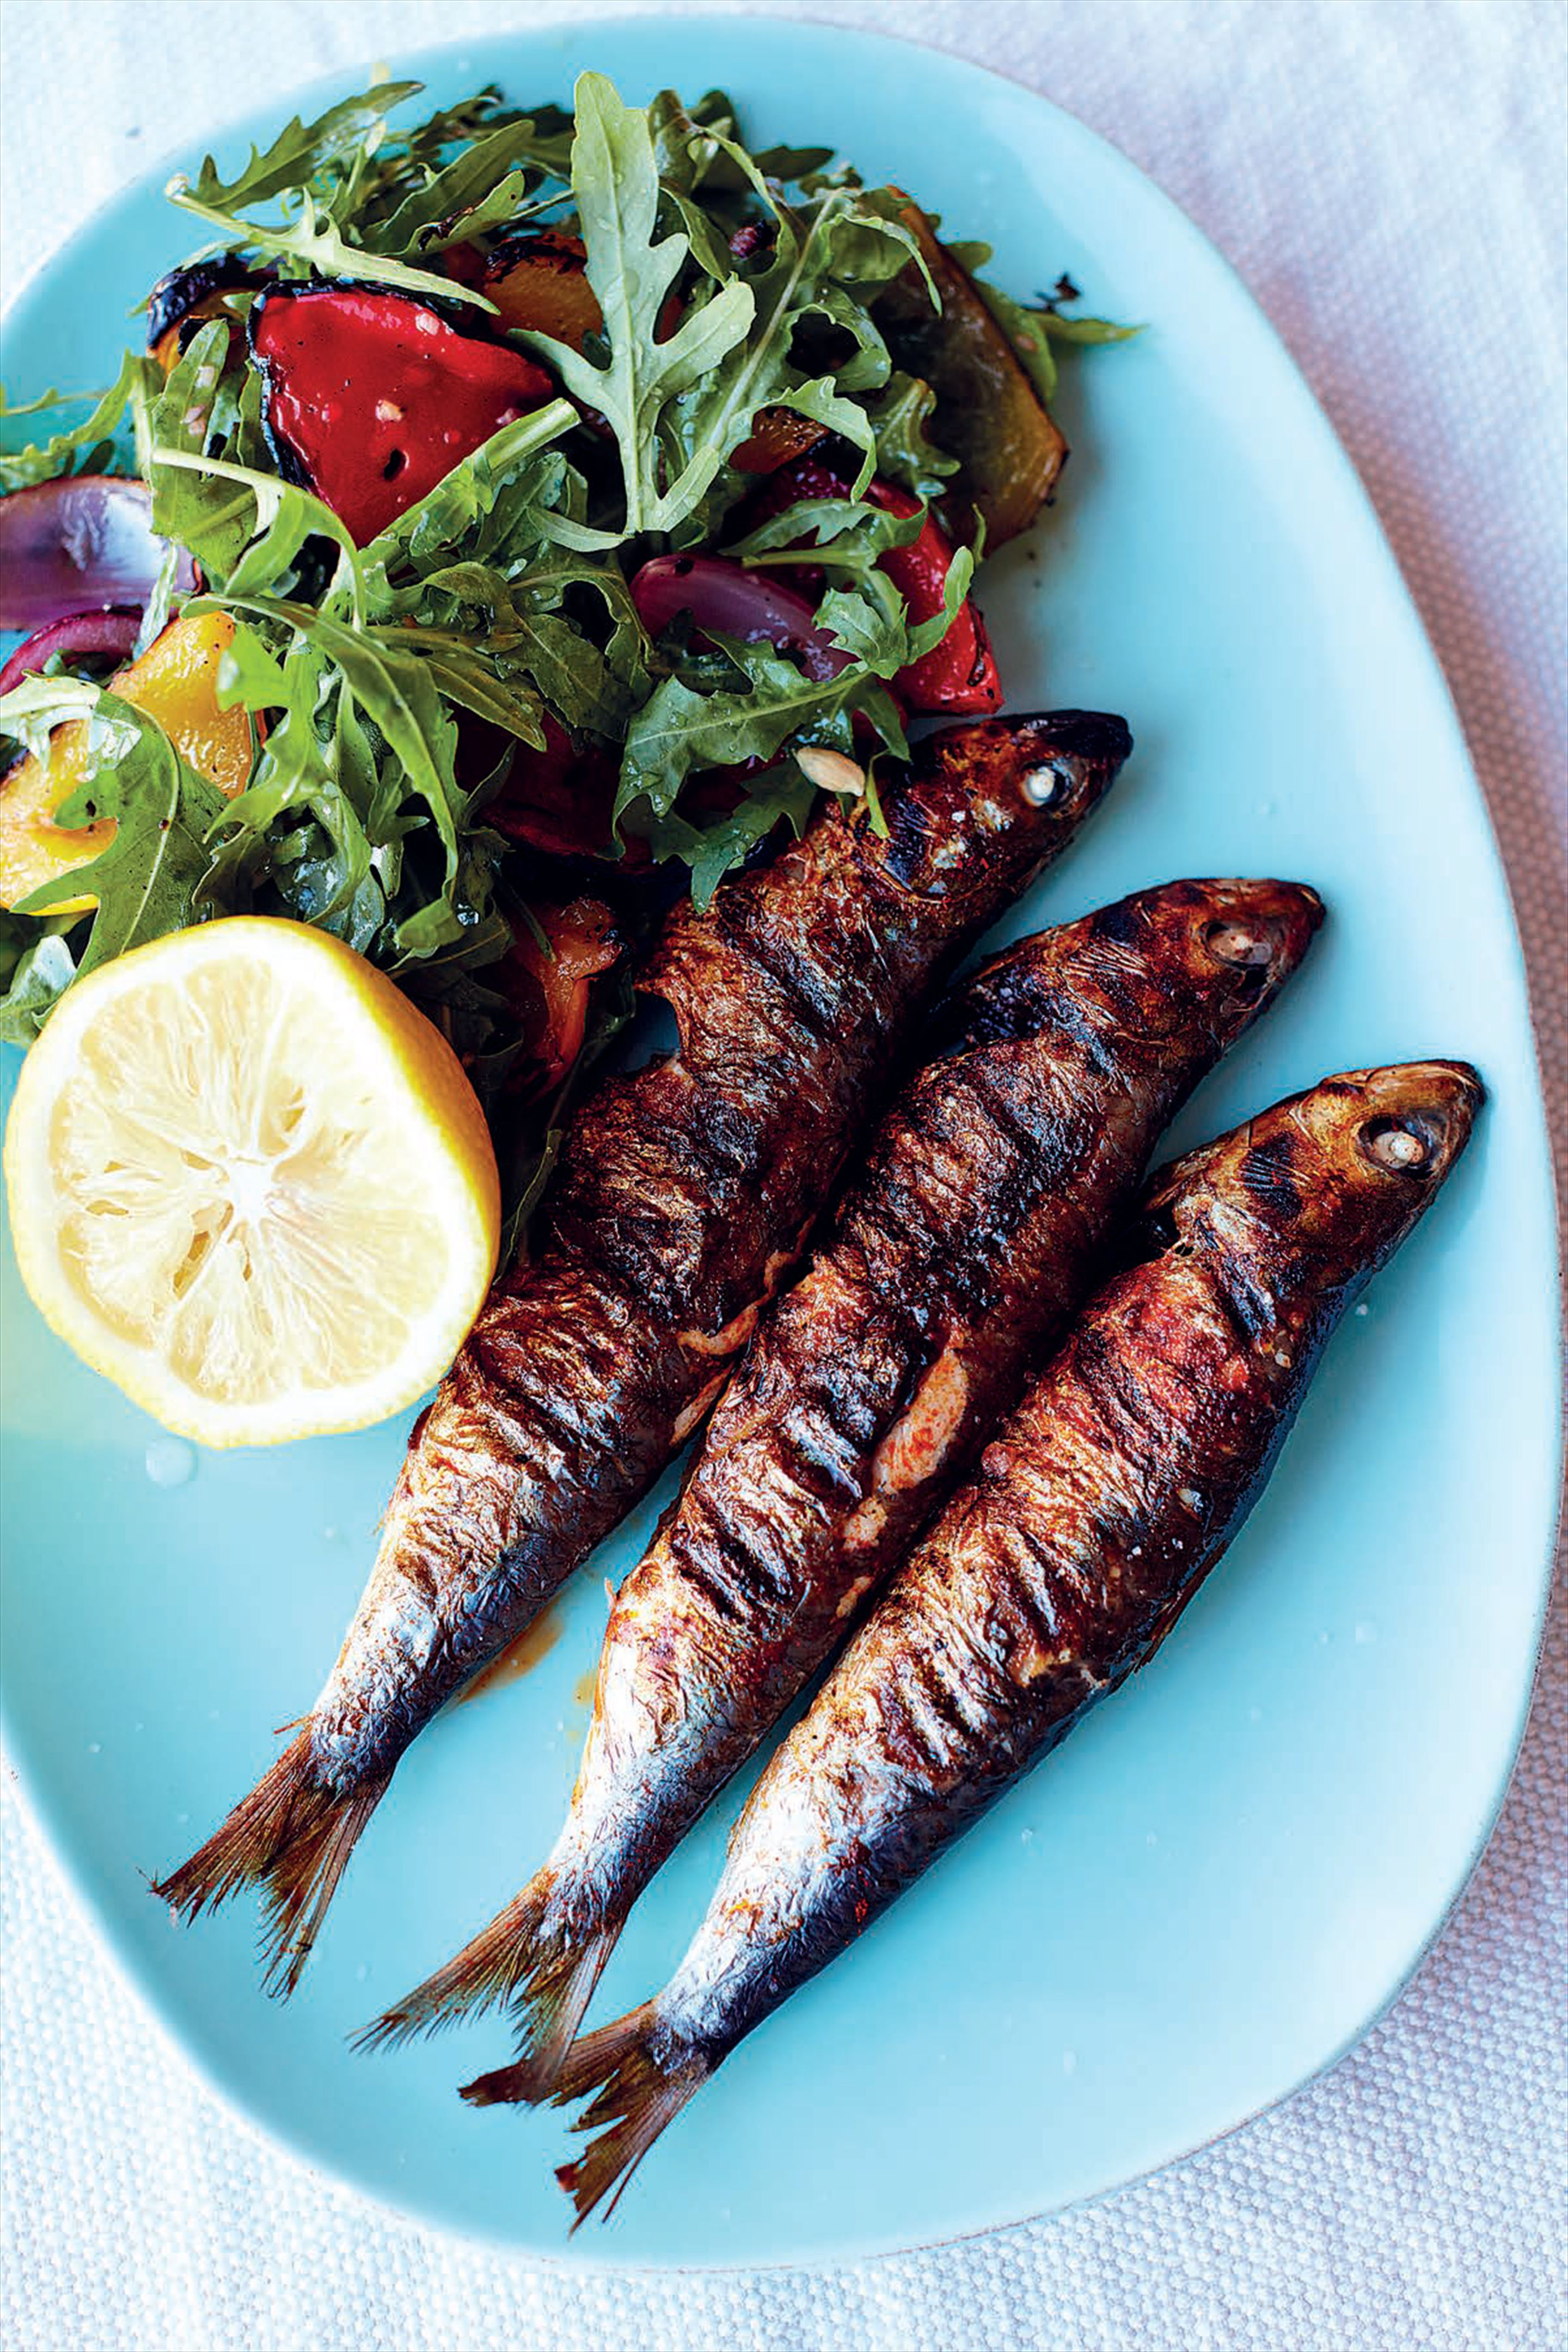 Smoked paprika sardines, marinated pepper salad